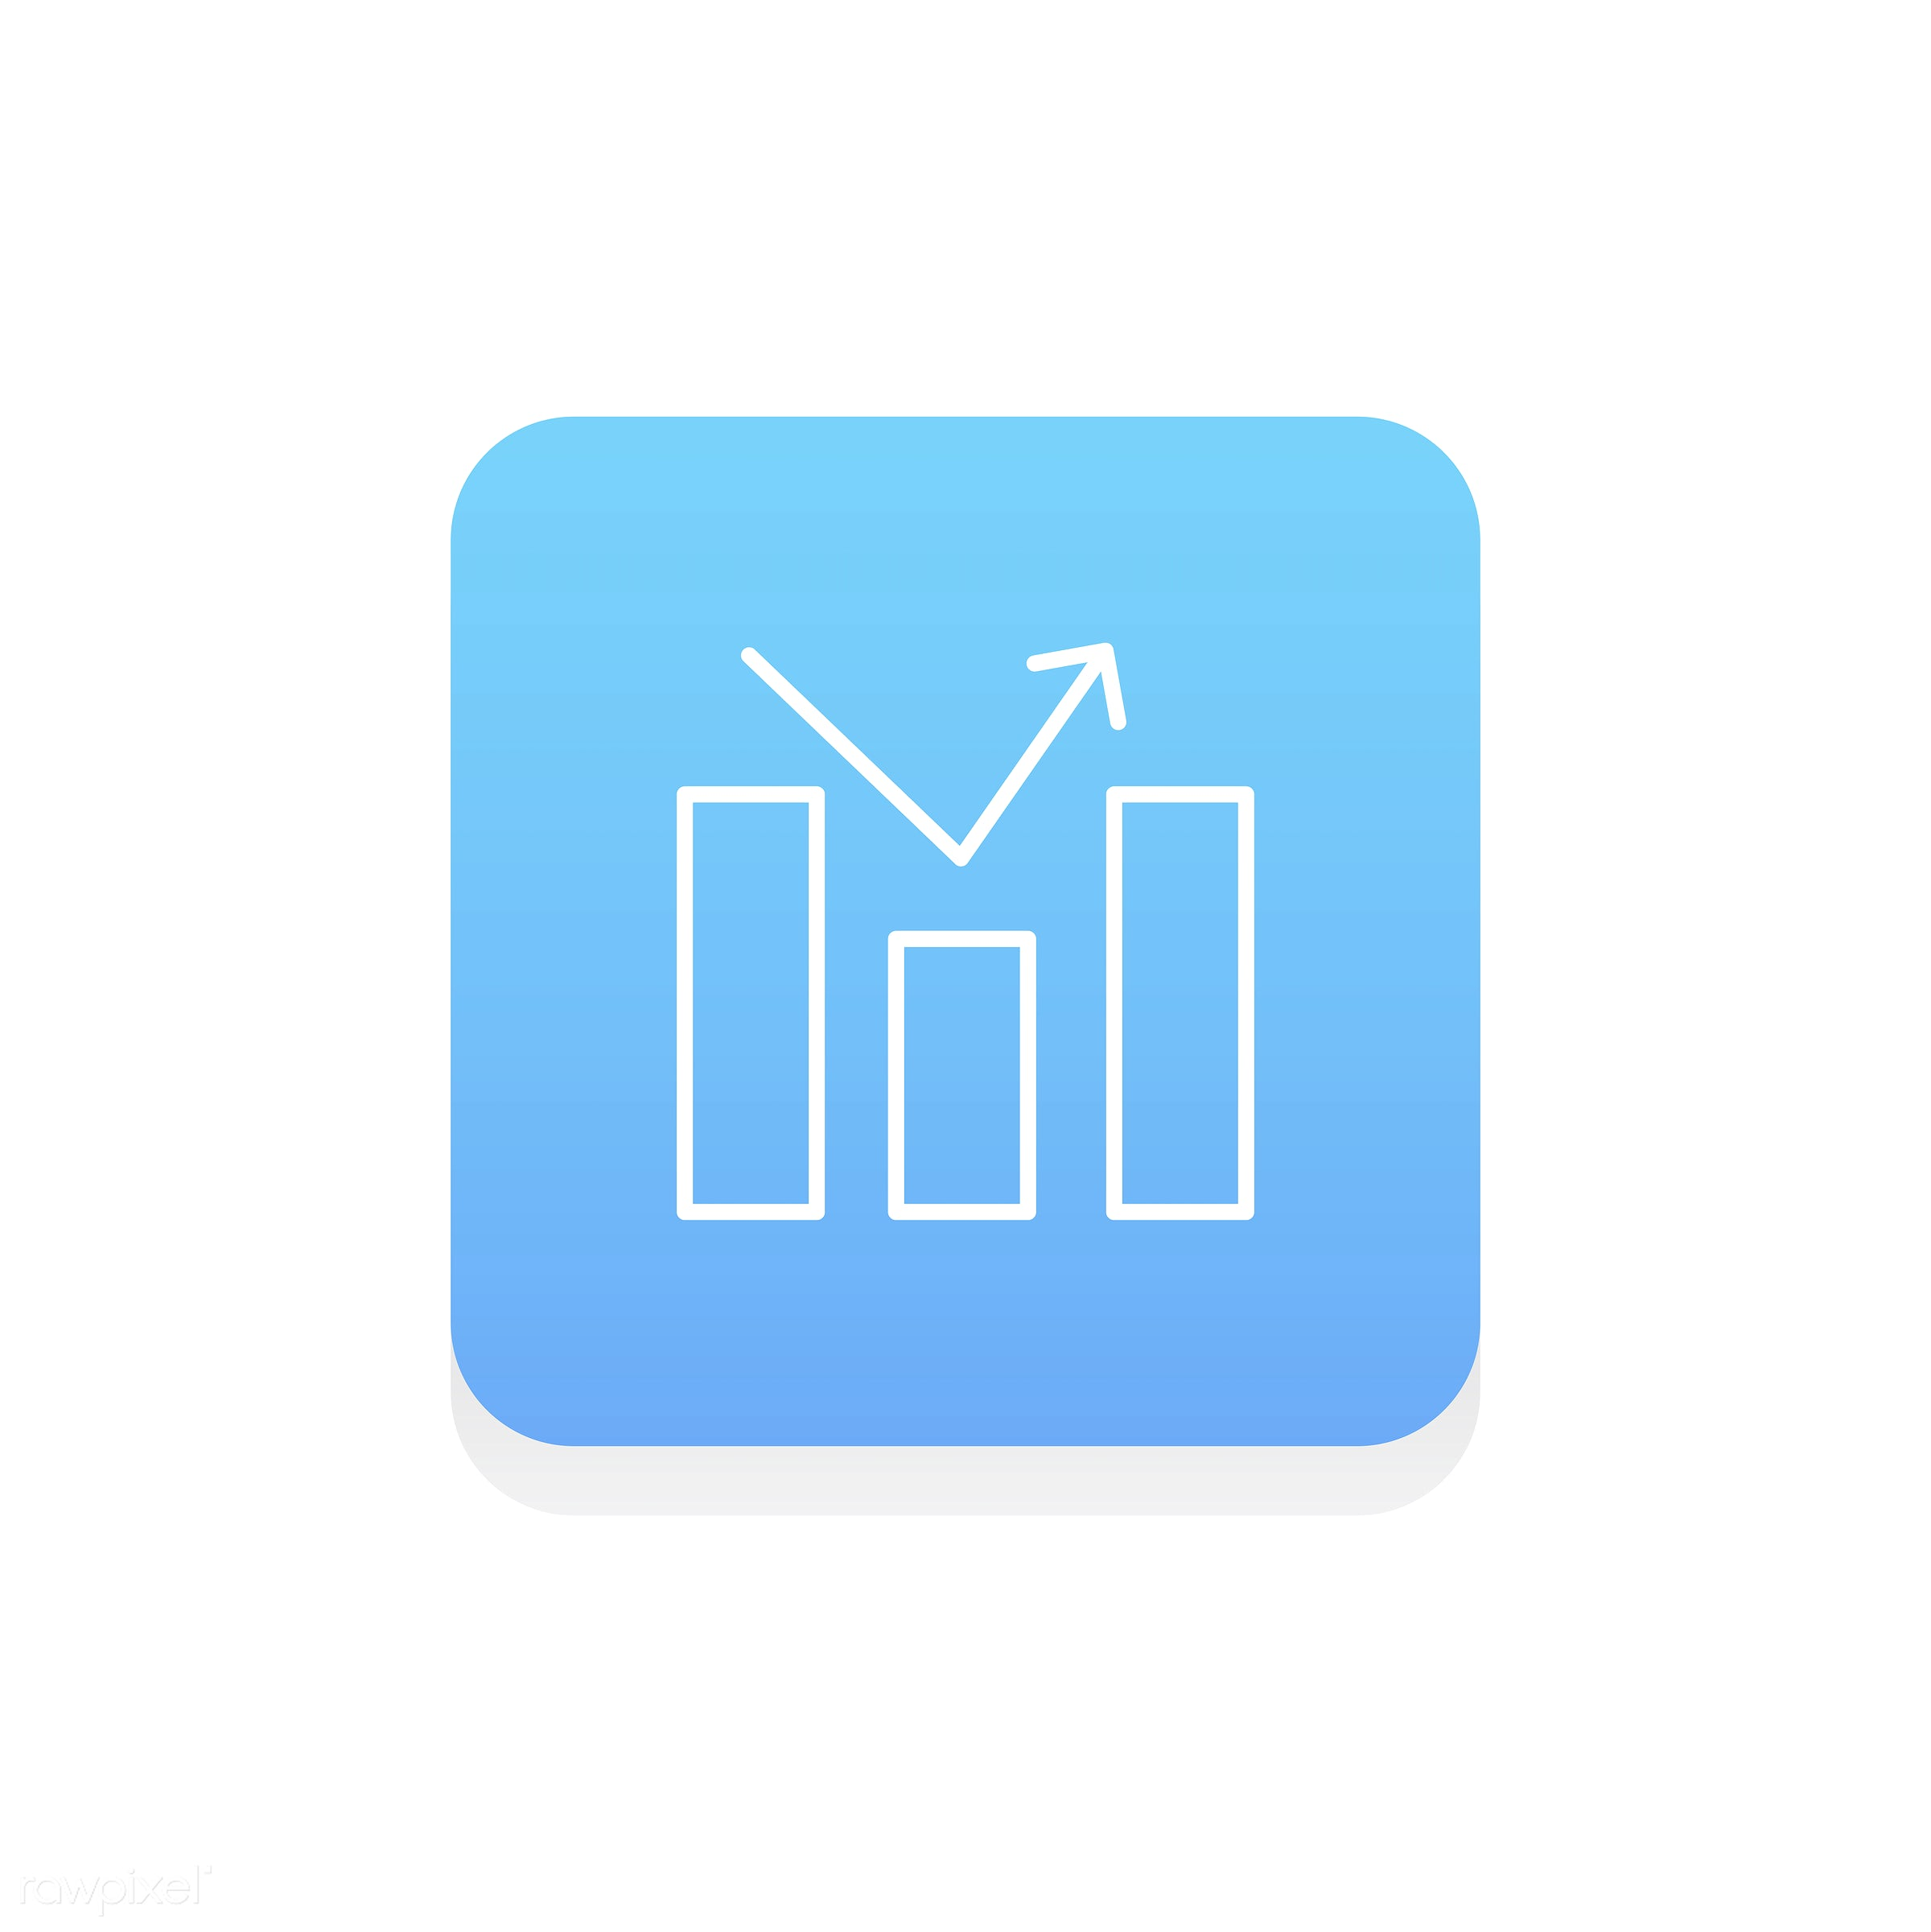 Vector of data analysis  graph icon - graph, analysis, business, data, design, flat, graphic, icon, illustration,...